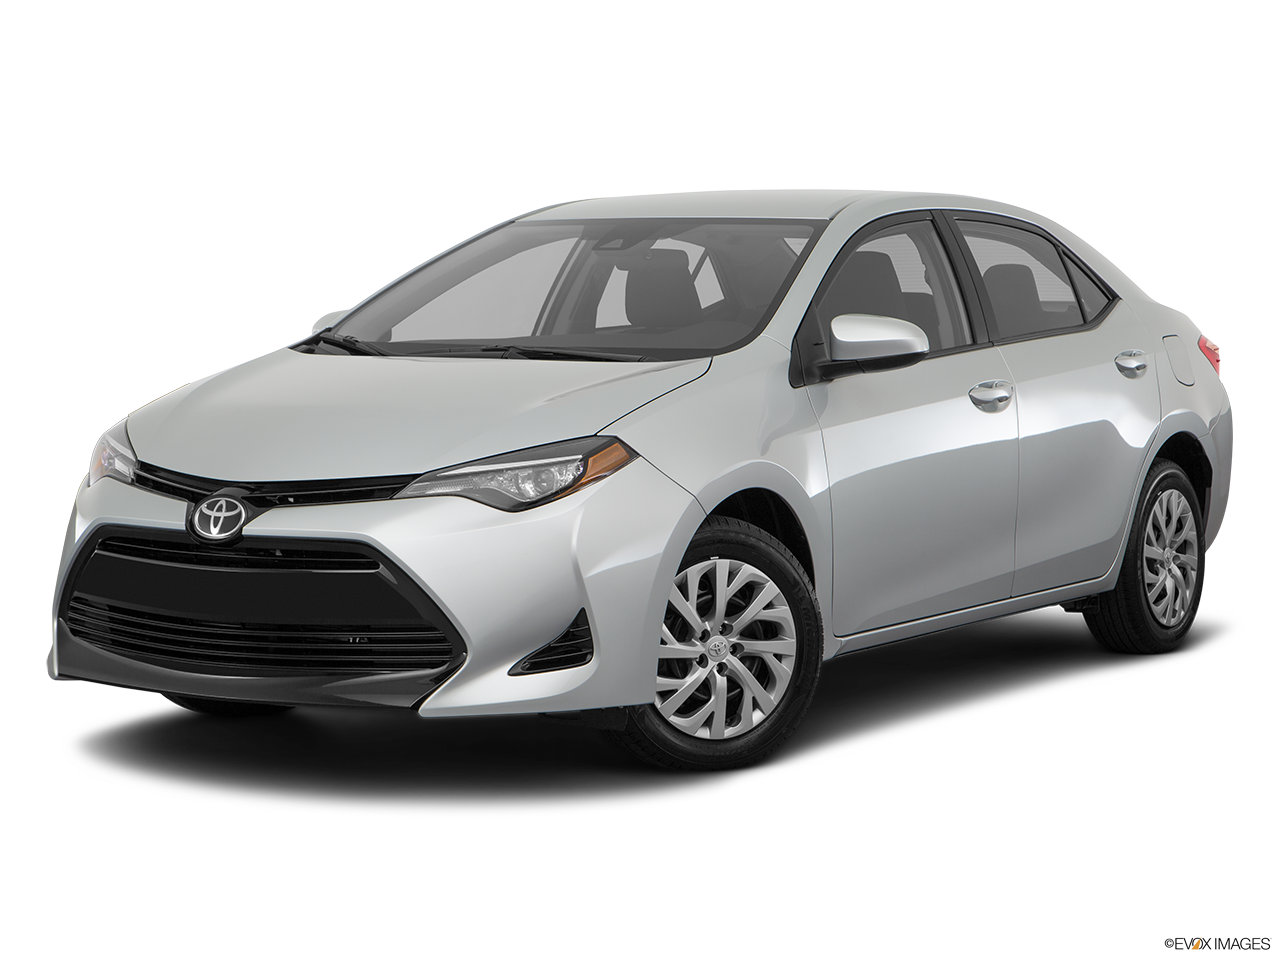 Test Drive A 2017 Toyota Corolla at Moss Bros Toyota of Moreno Valley in Riverside